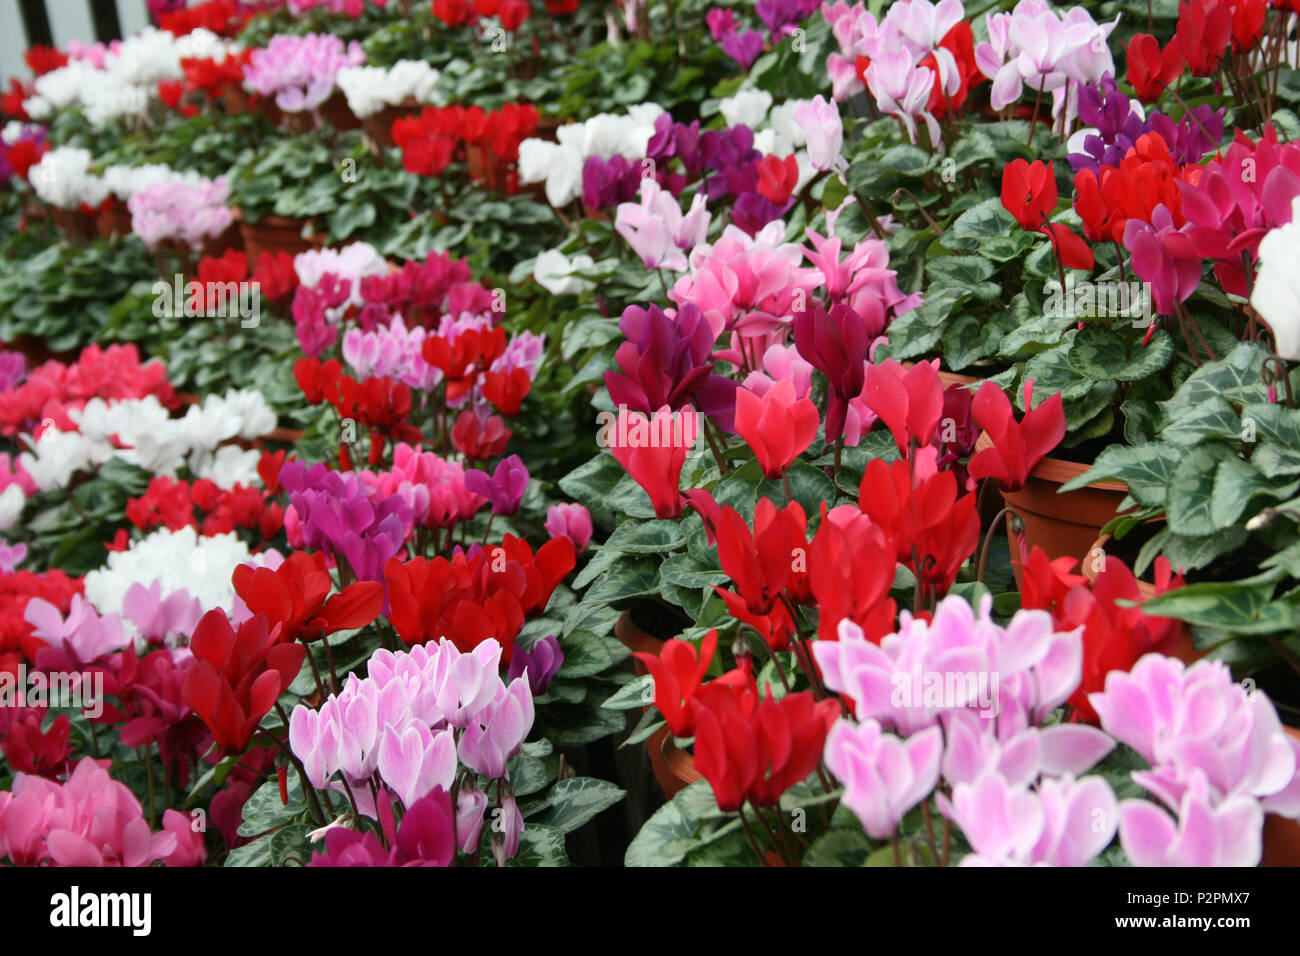 Colourful Cyclamen flowers which grow from tubers and are valued for their  upswept petals and patterned leaves. - Stock Image